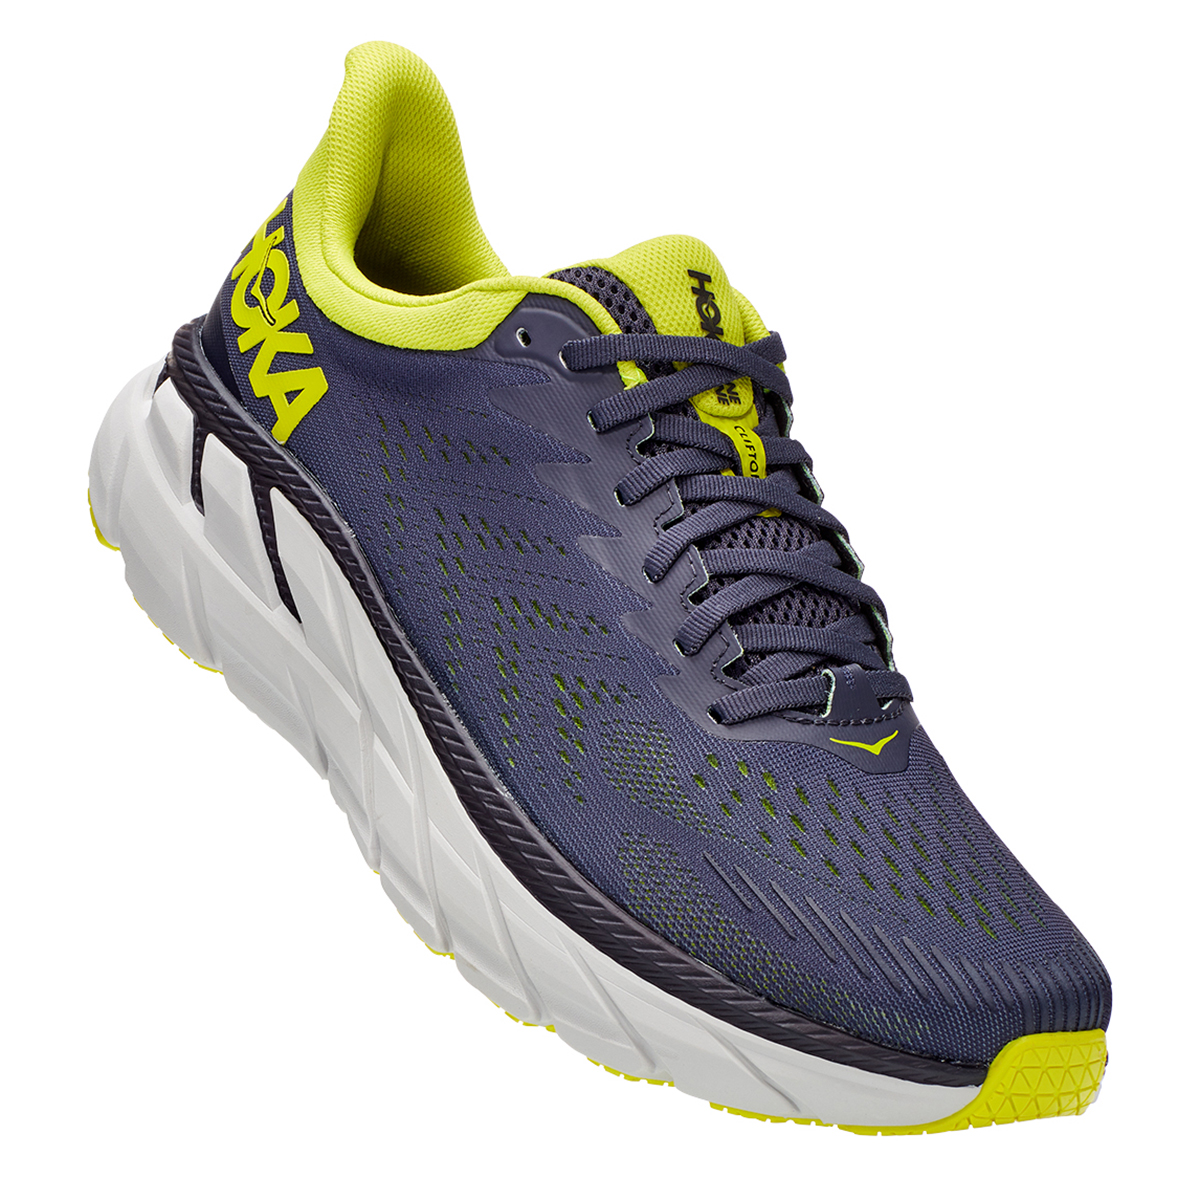 Men's Hoka One One Clifton 7 Running Shoe - Color: Odyssey Grey/Evening Primrose - Size: 7 - Width: Regular, Odyssey Grey/Evening Primrose, large, image 4